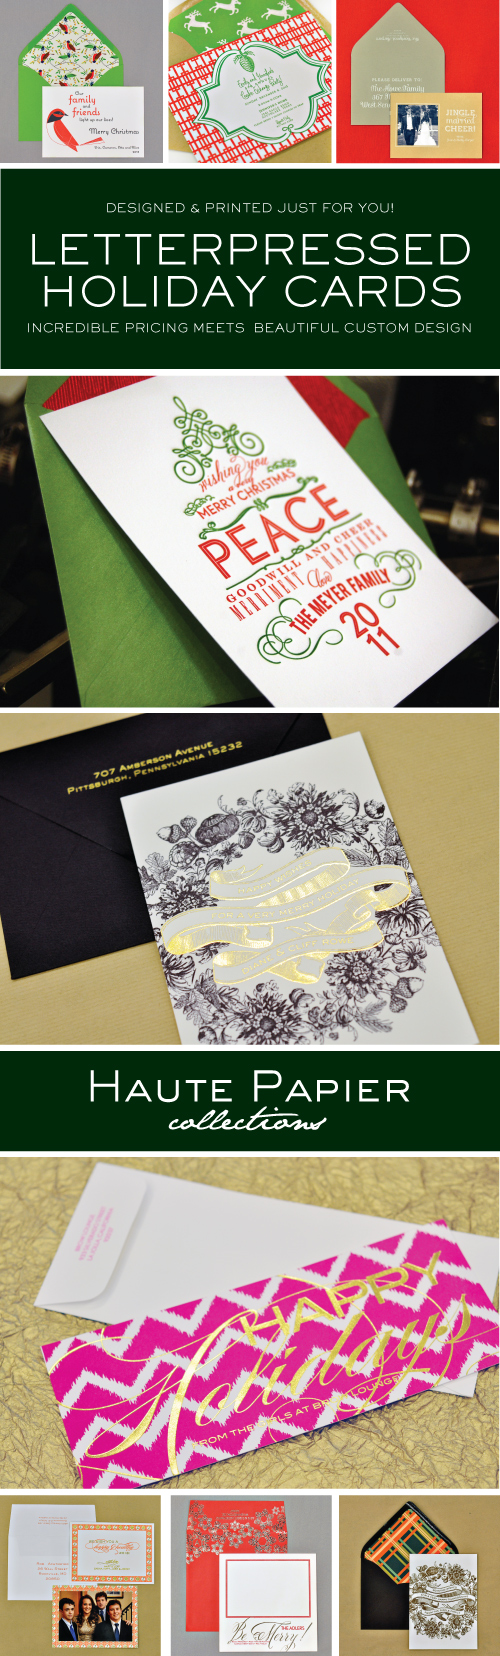 Haute_Papier_Holiday_Card_Promo2013.jpg